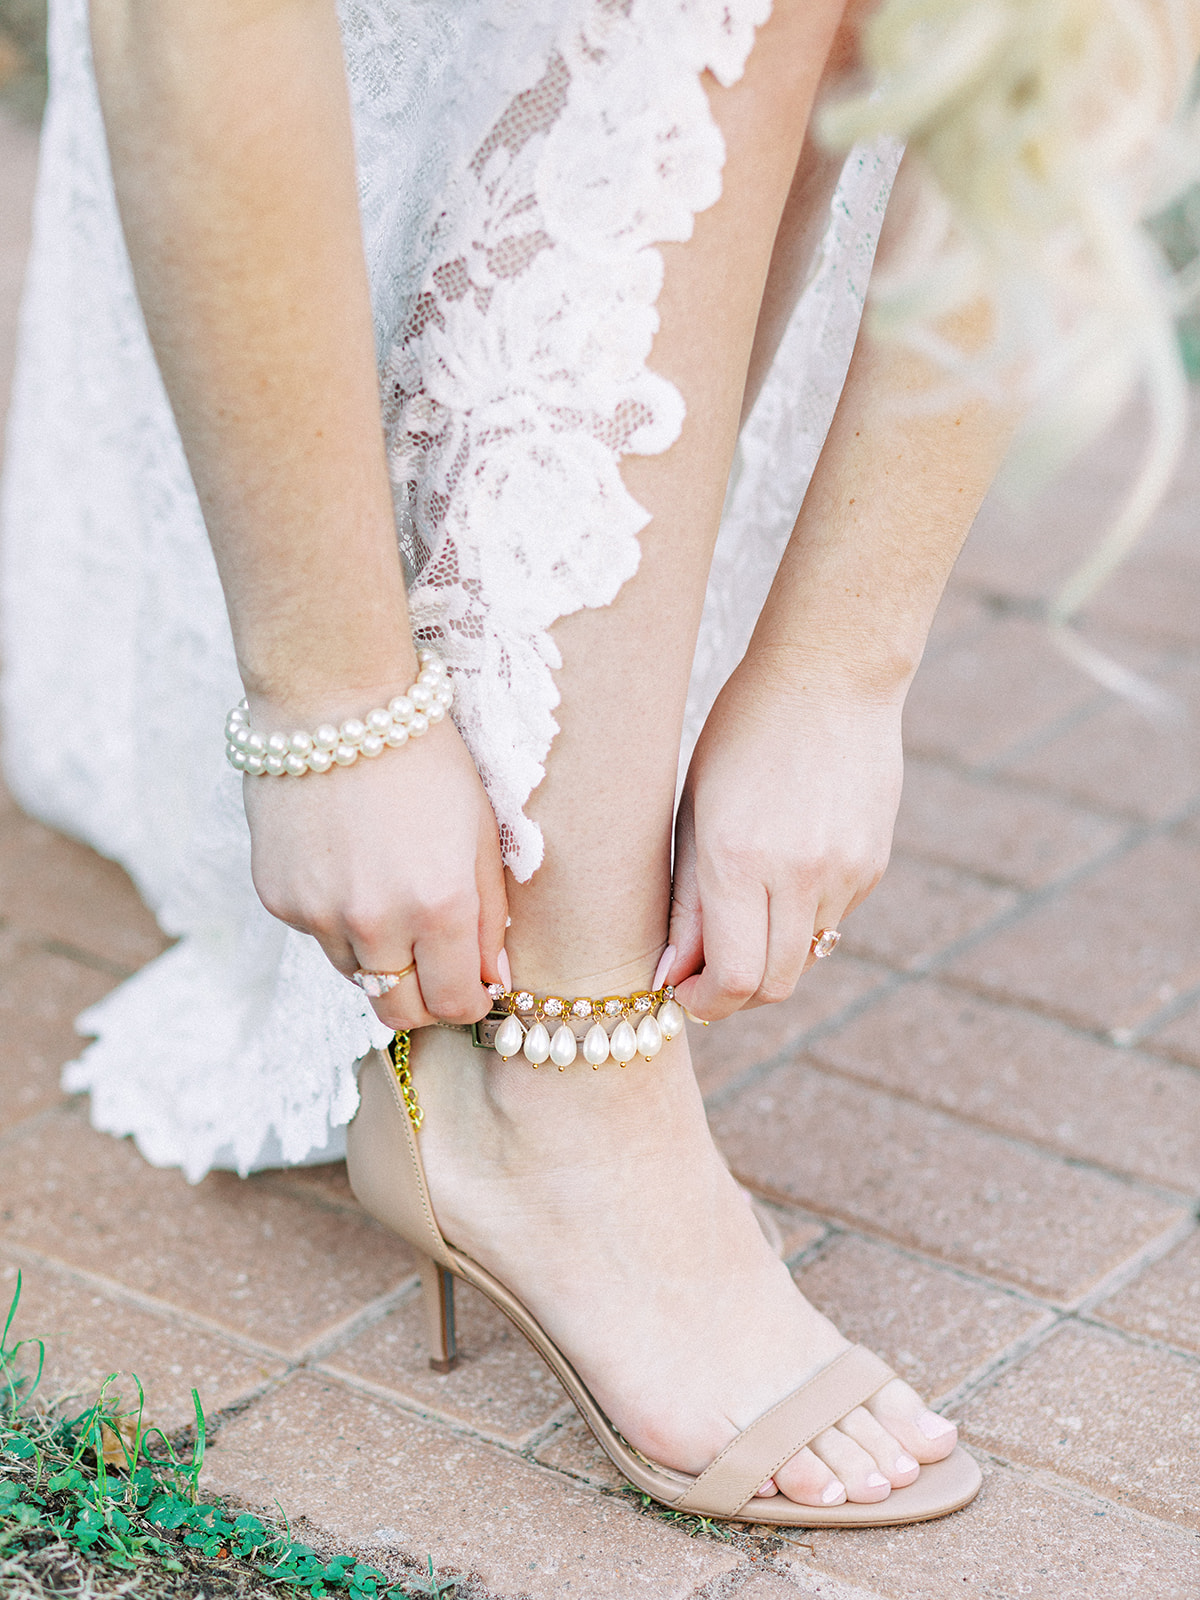 Bridal Shoes: Whimsical Clarks Garden Wedding